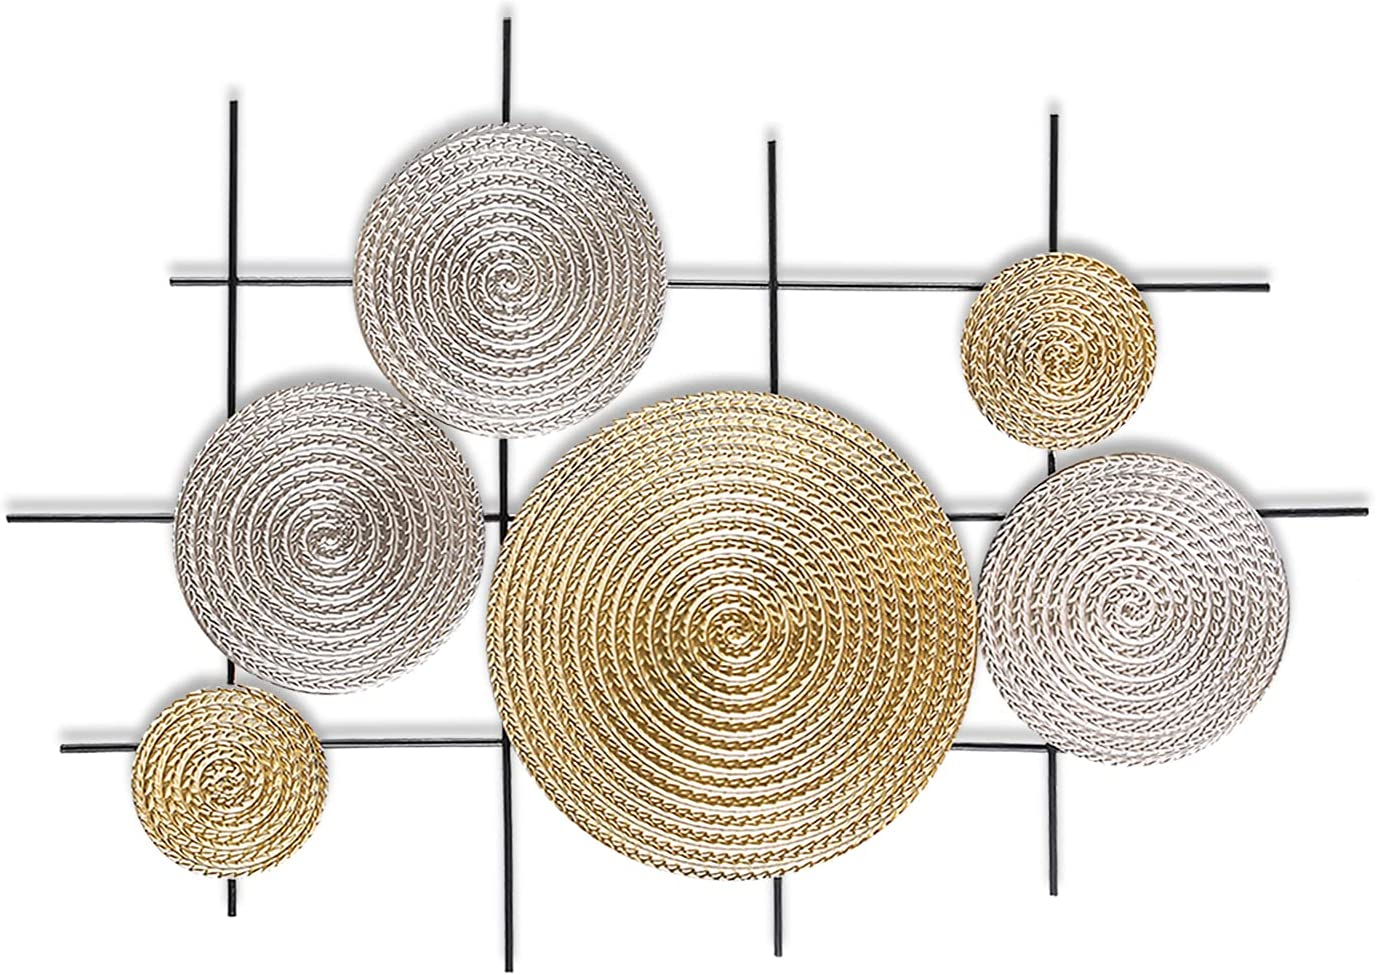 Metal Wall Art Modernist Iron Wall Decor Silver and Gold Modernist Floating Circles Crinkle Hand Cast Abstract Geometric Decoration for Porch,Room,Living Room, about 2.5FT Long